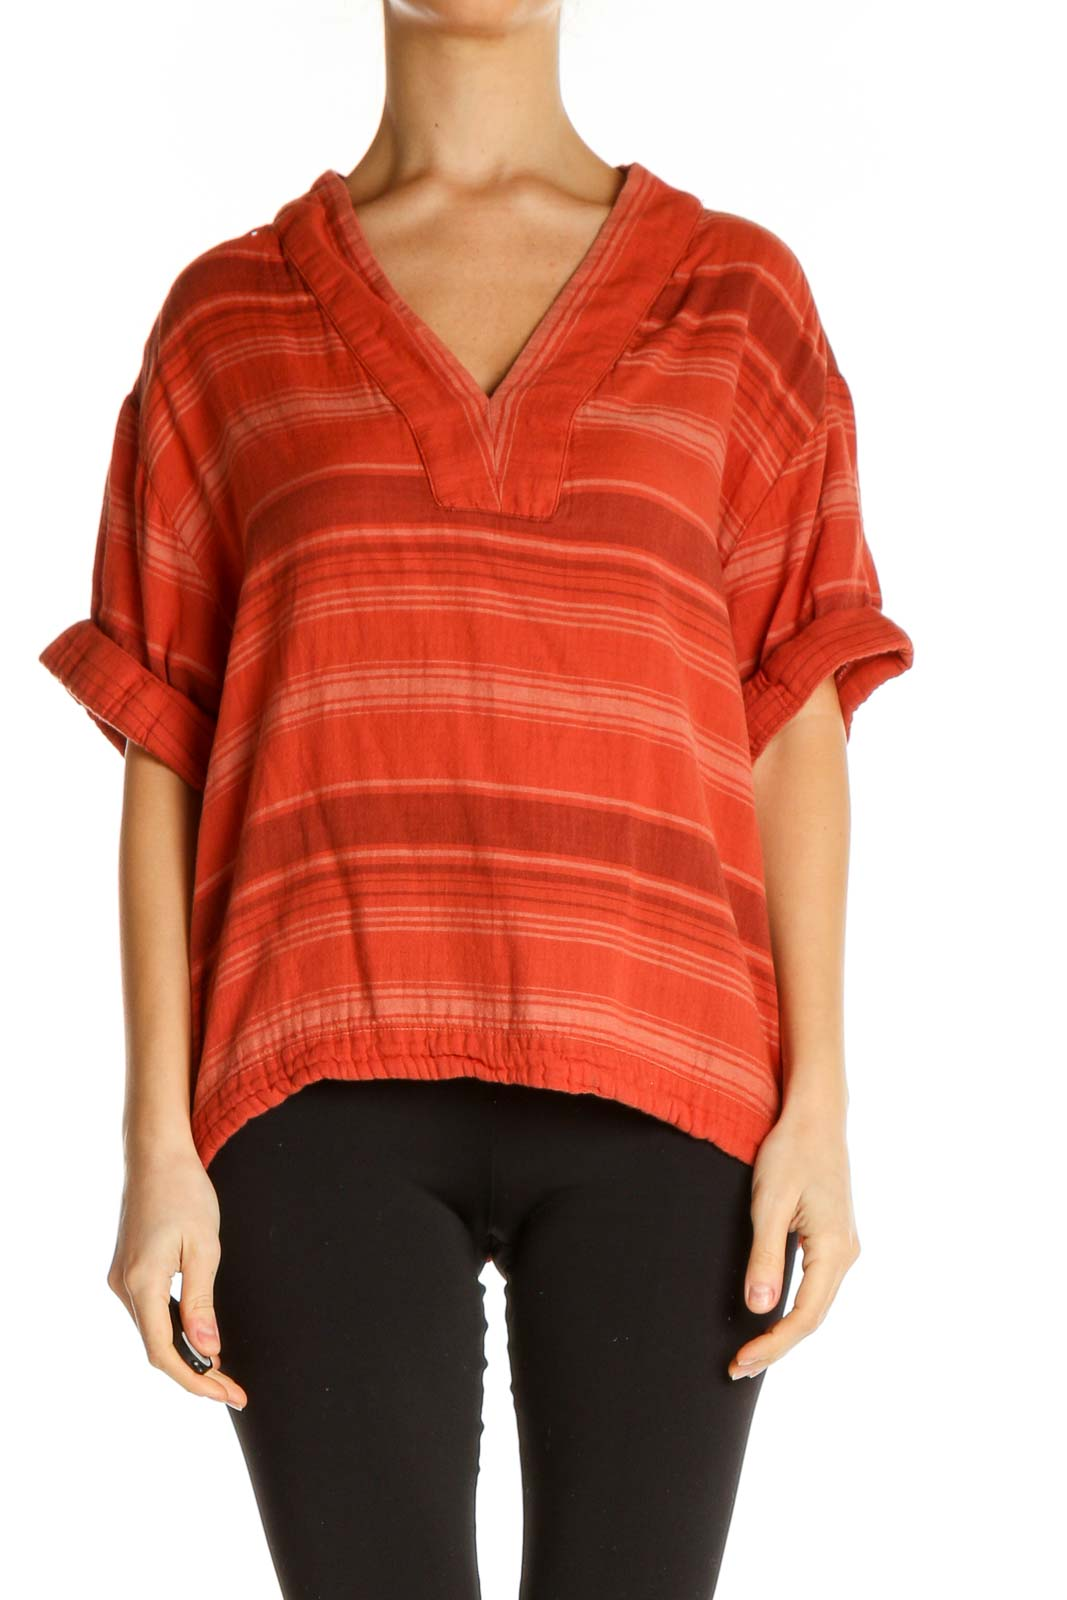 Orange Striped All Day Wear Top Front